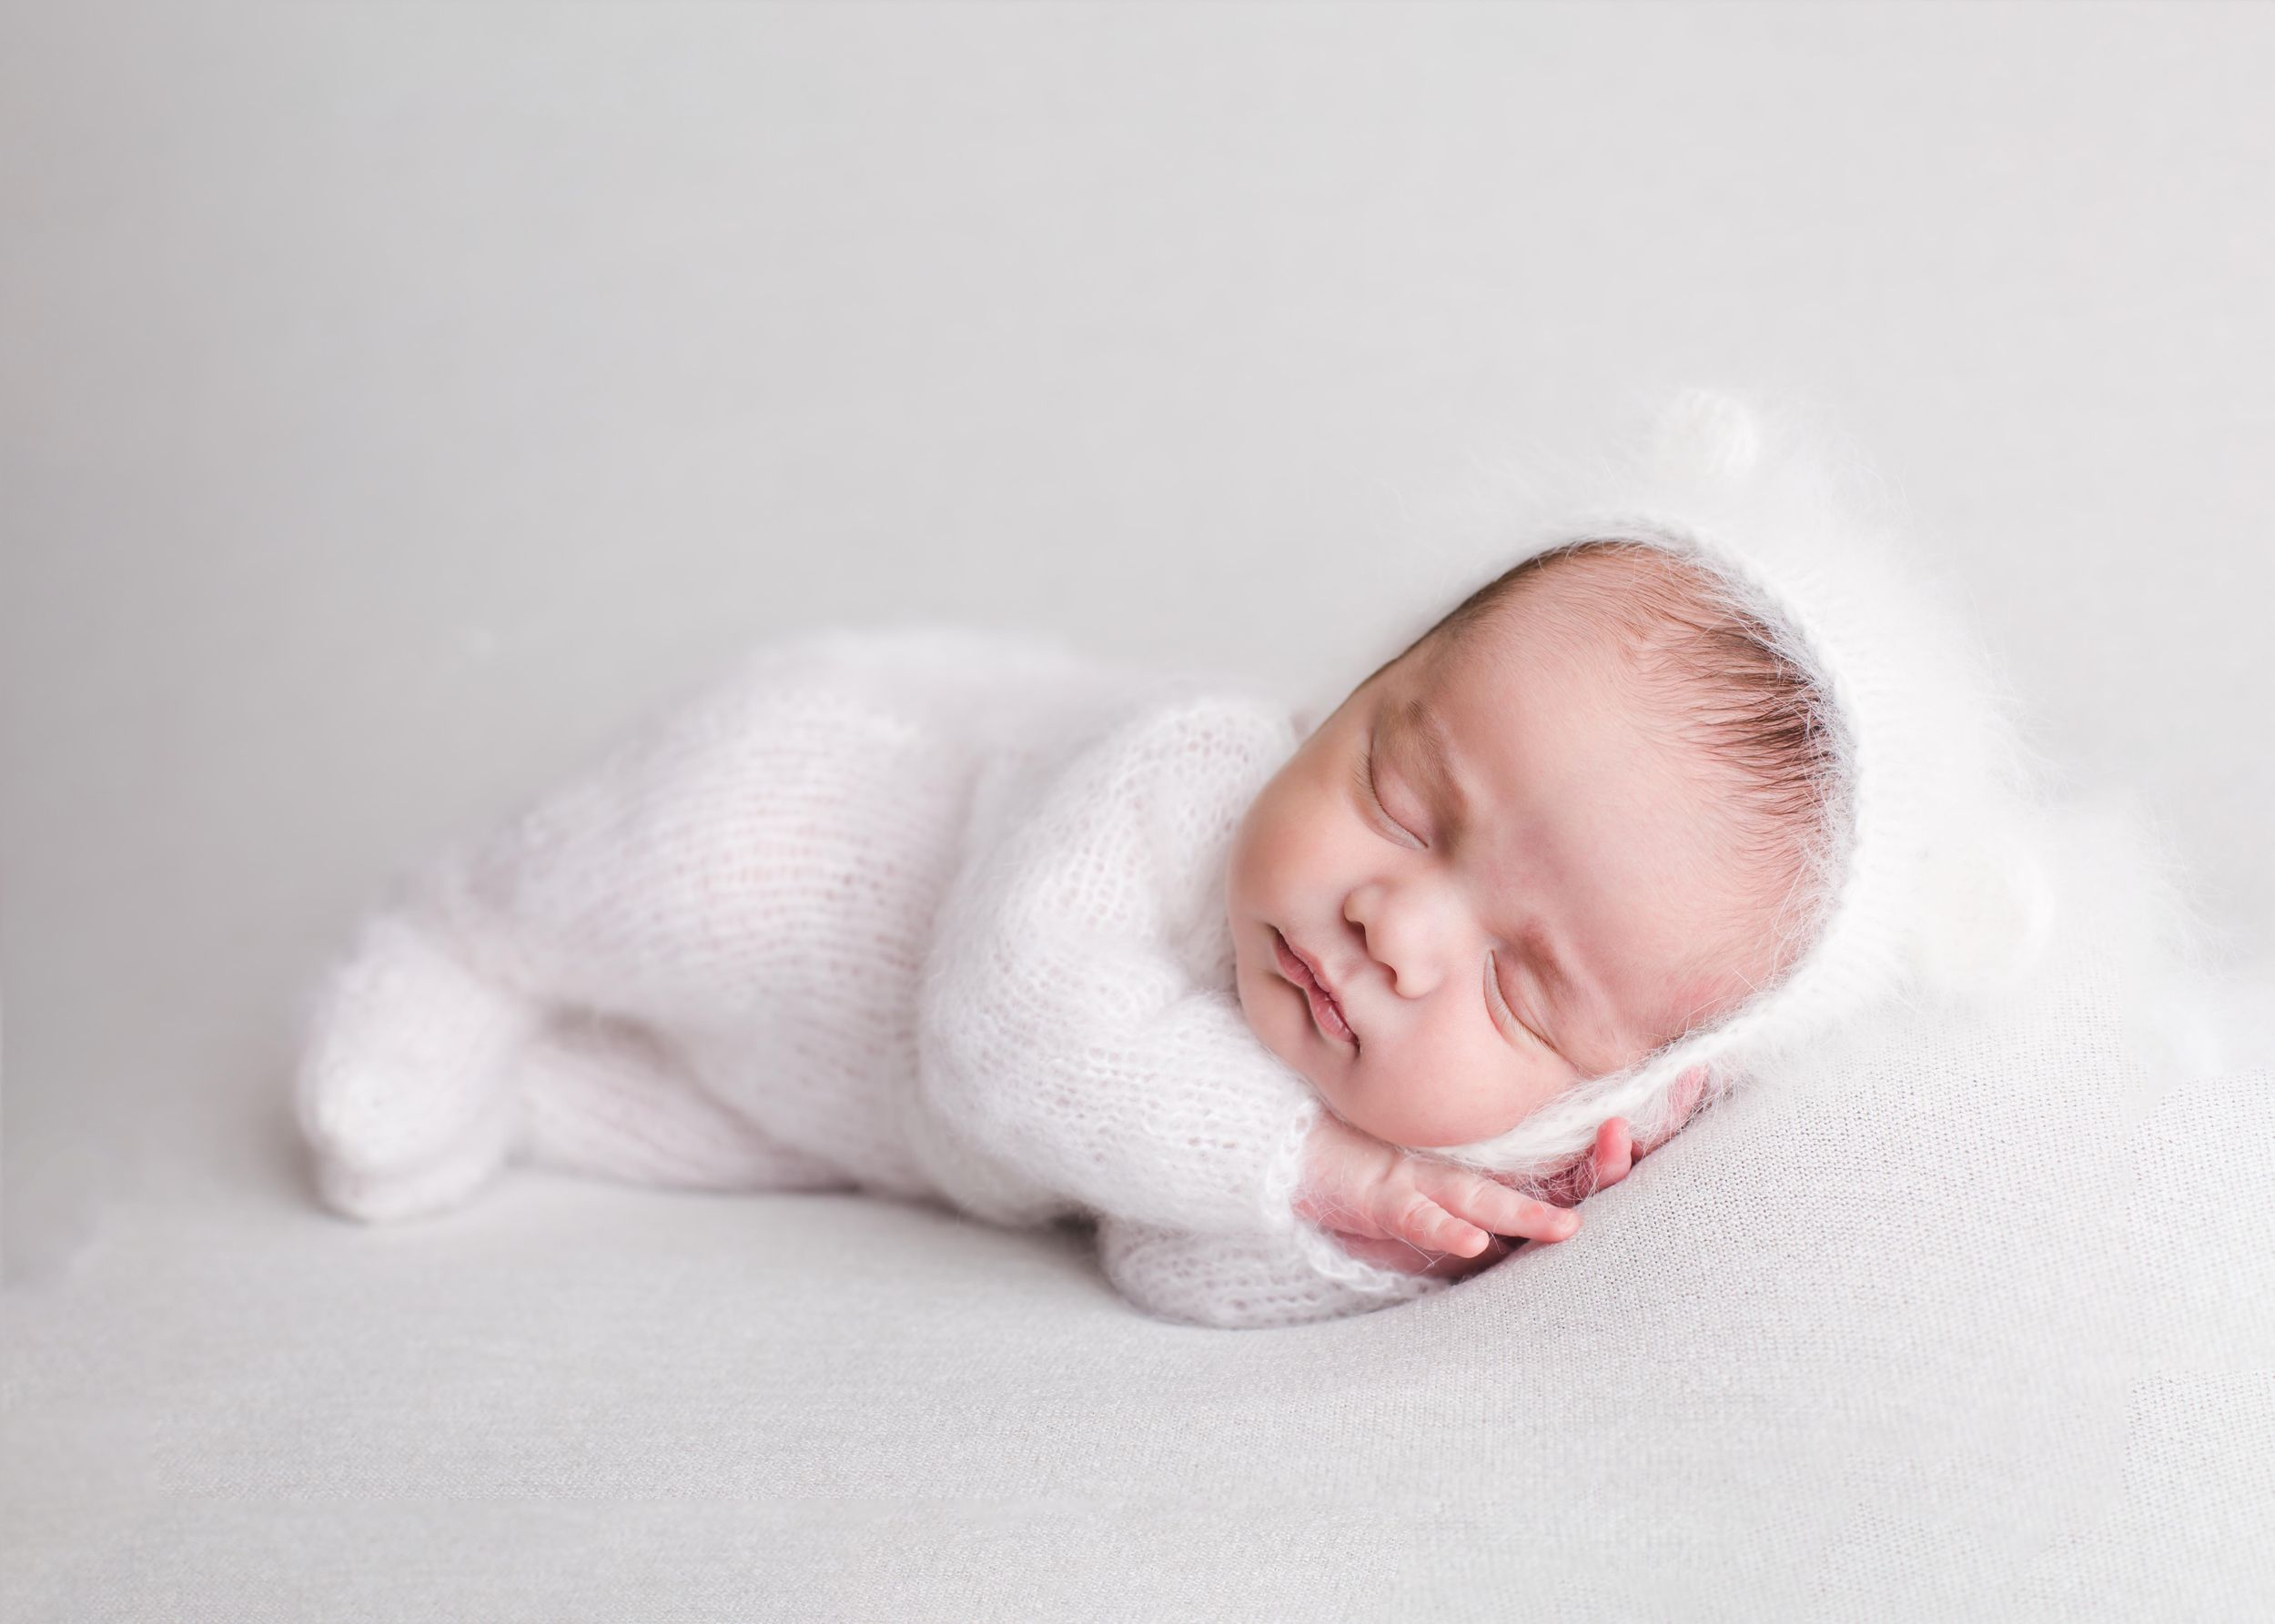 Newborn baby laying on a white blanket in a cute white knit outfit - Newborn photography in Penticton